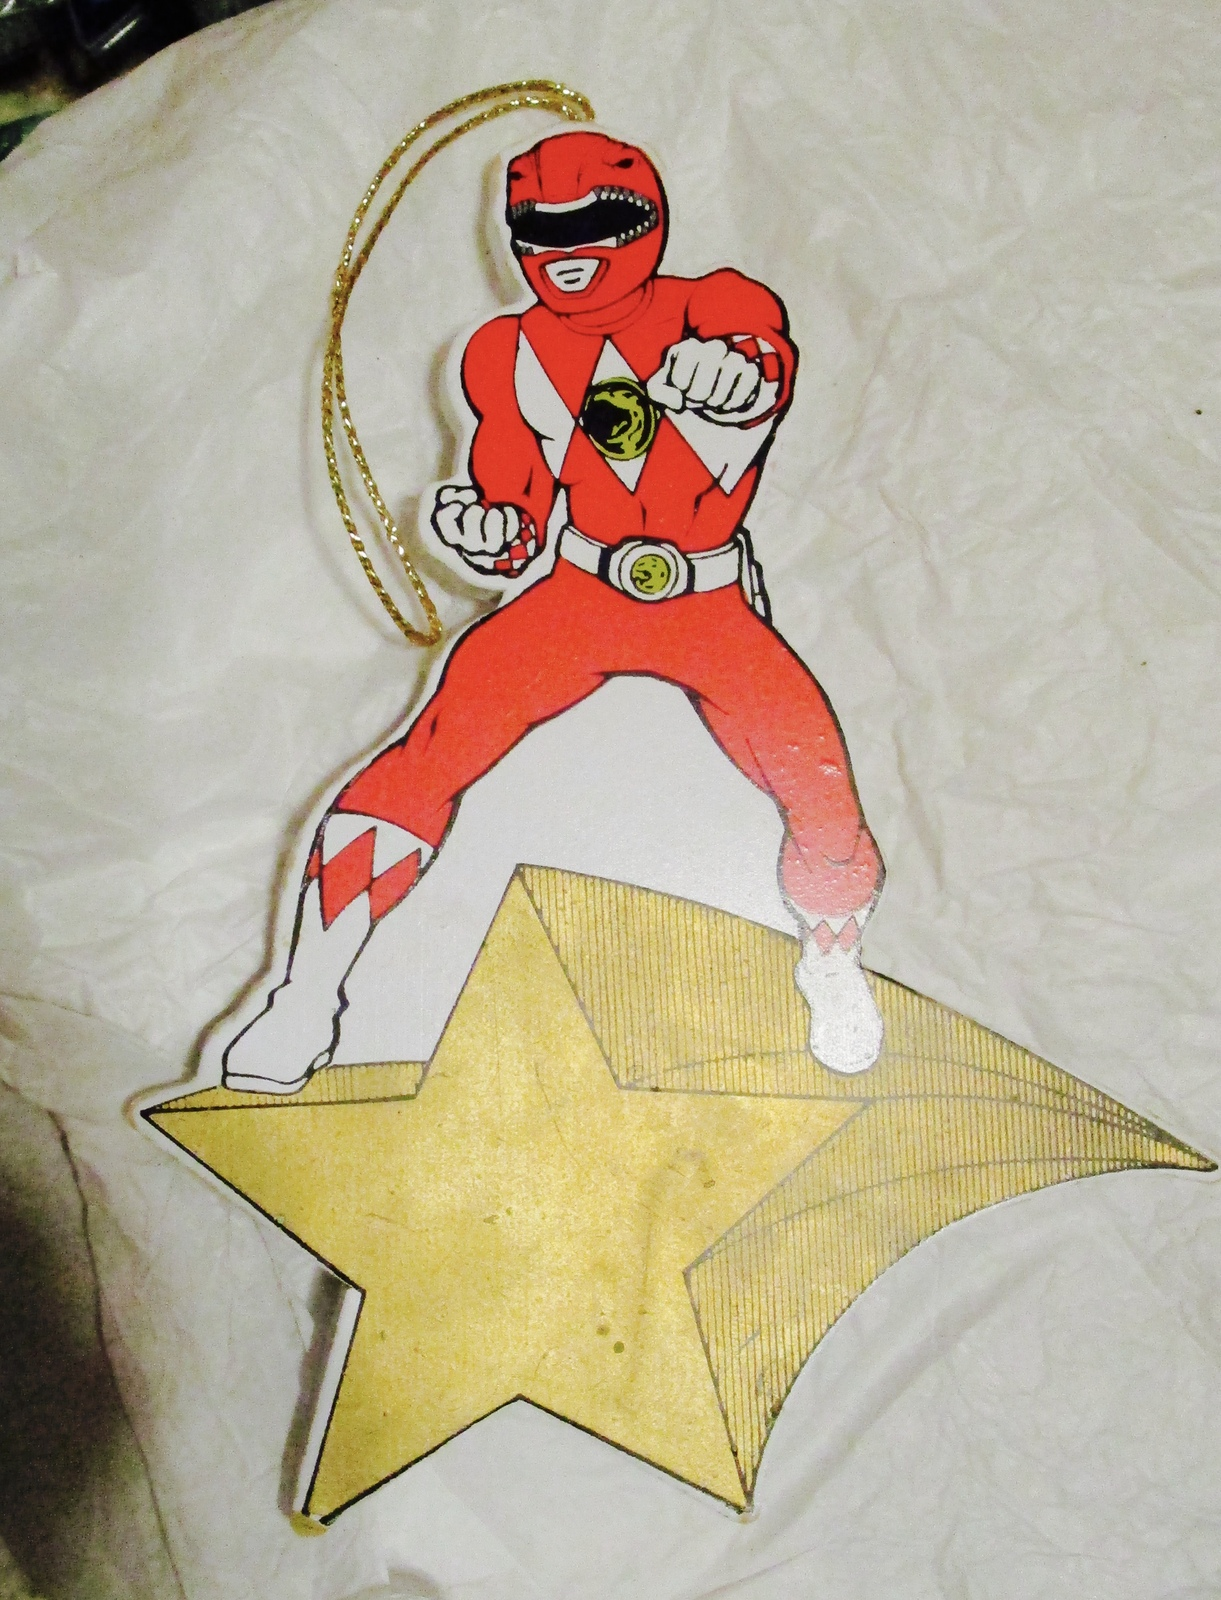 VTG POWER RANGERS WOOD CHRISTMAS ORNAMENT SABAN RED RANGER 1995